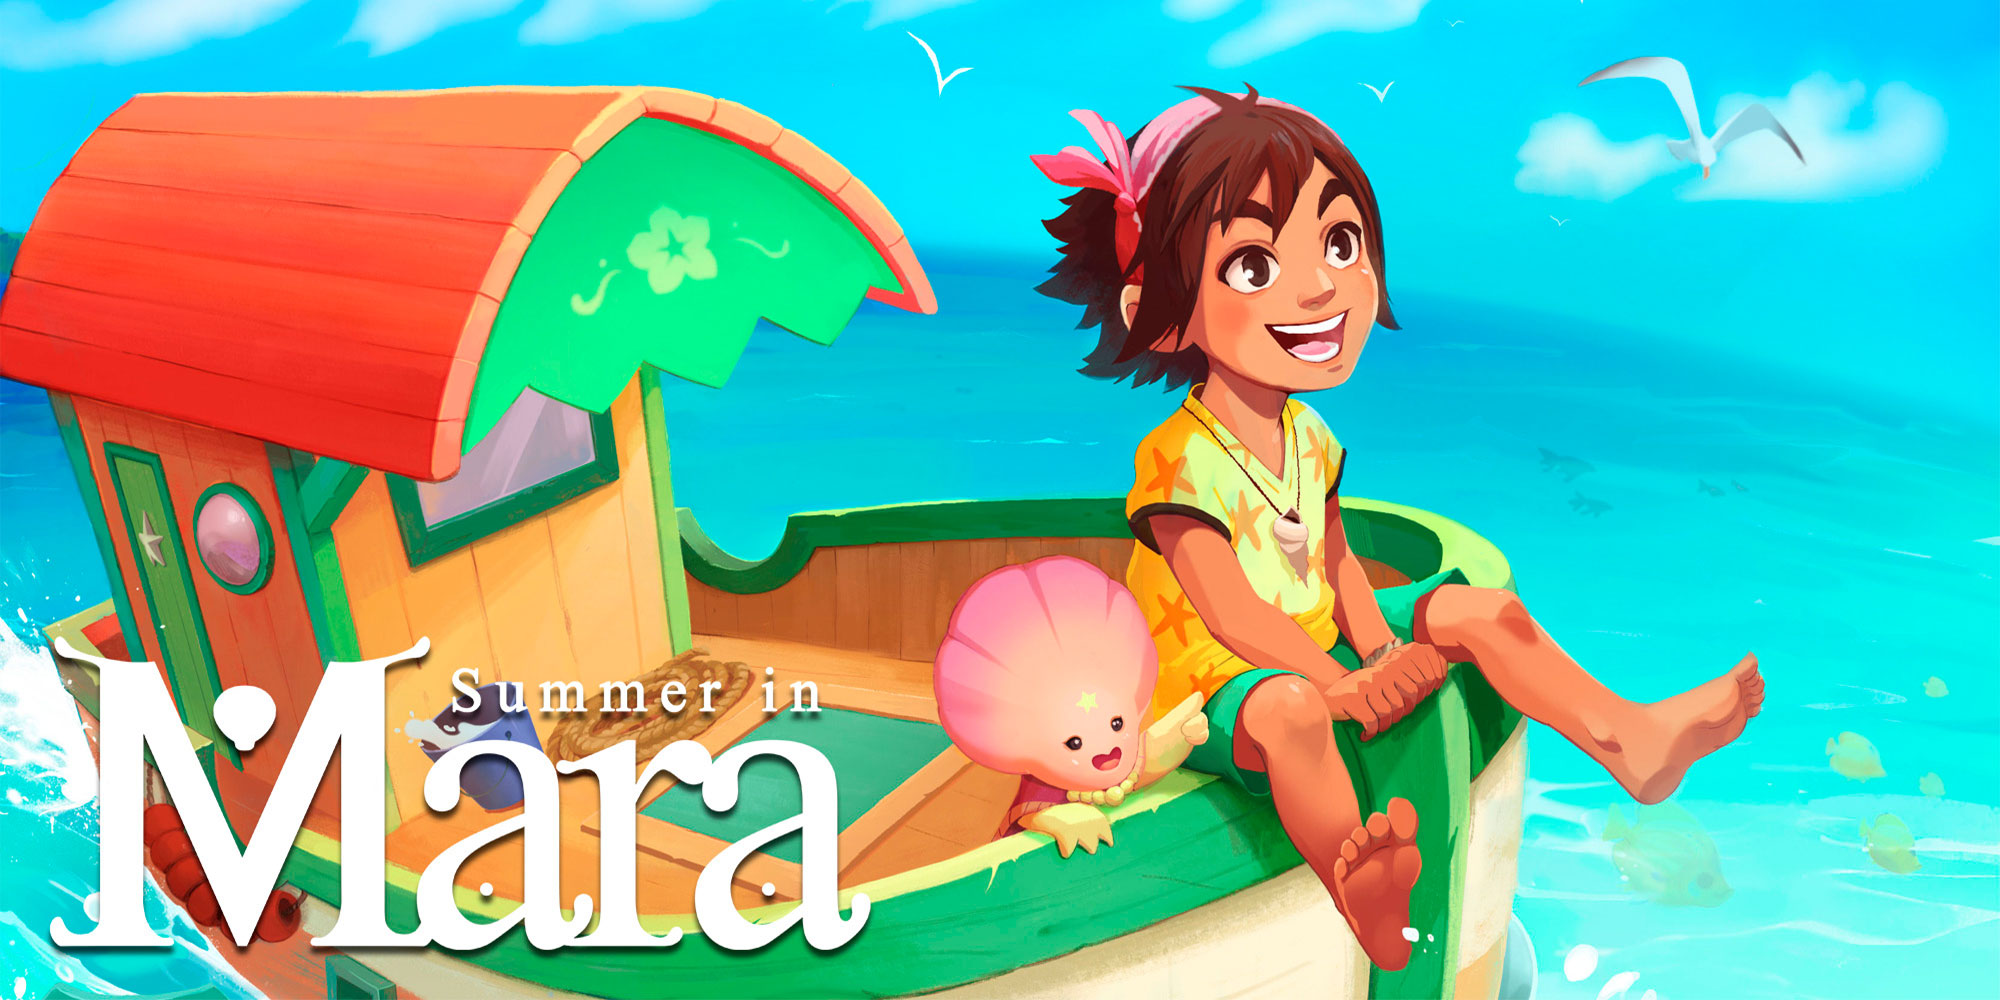 Summer in Mara | Programas descargables Nintendo Switch | Juegos | Nintendo